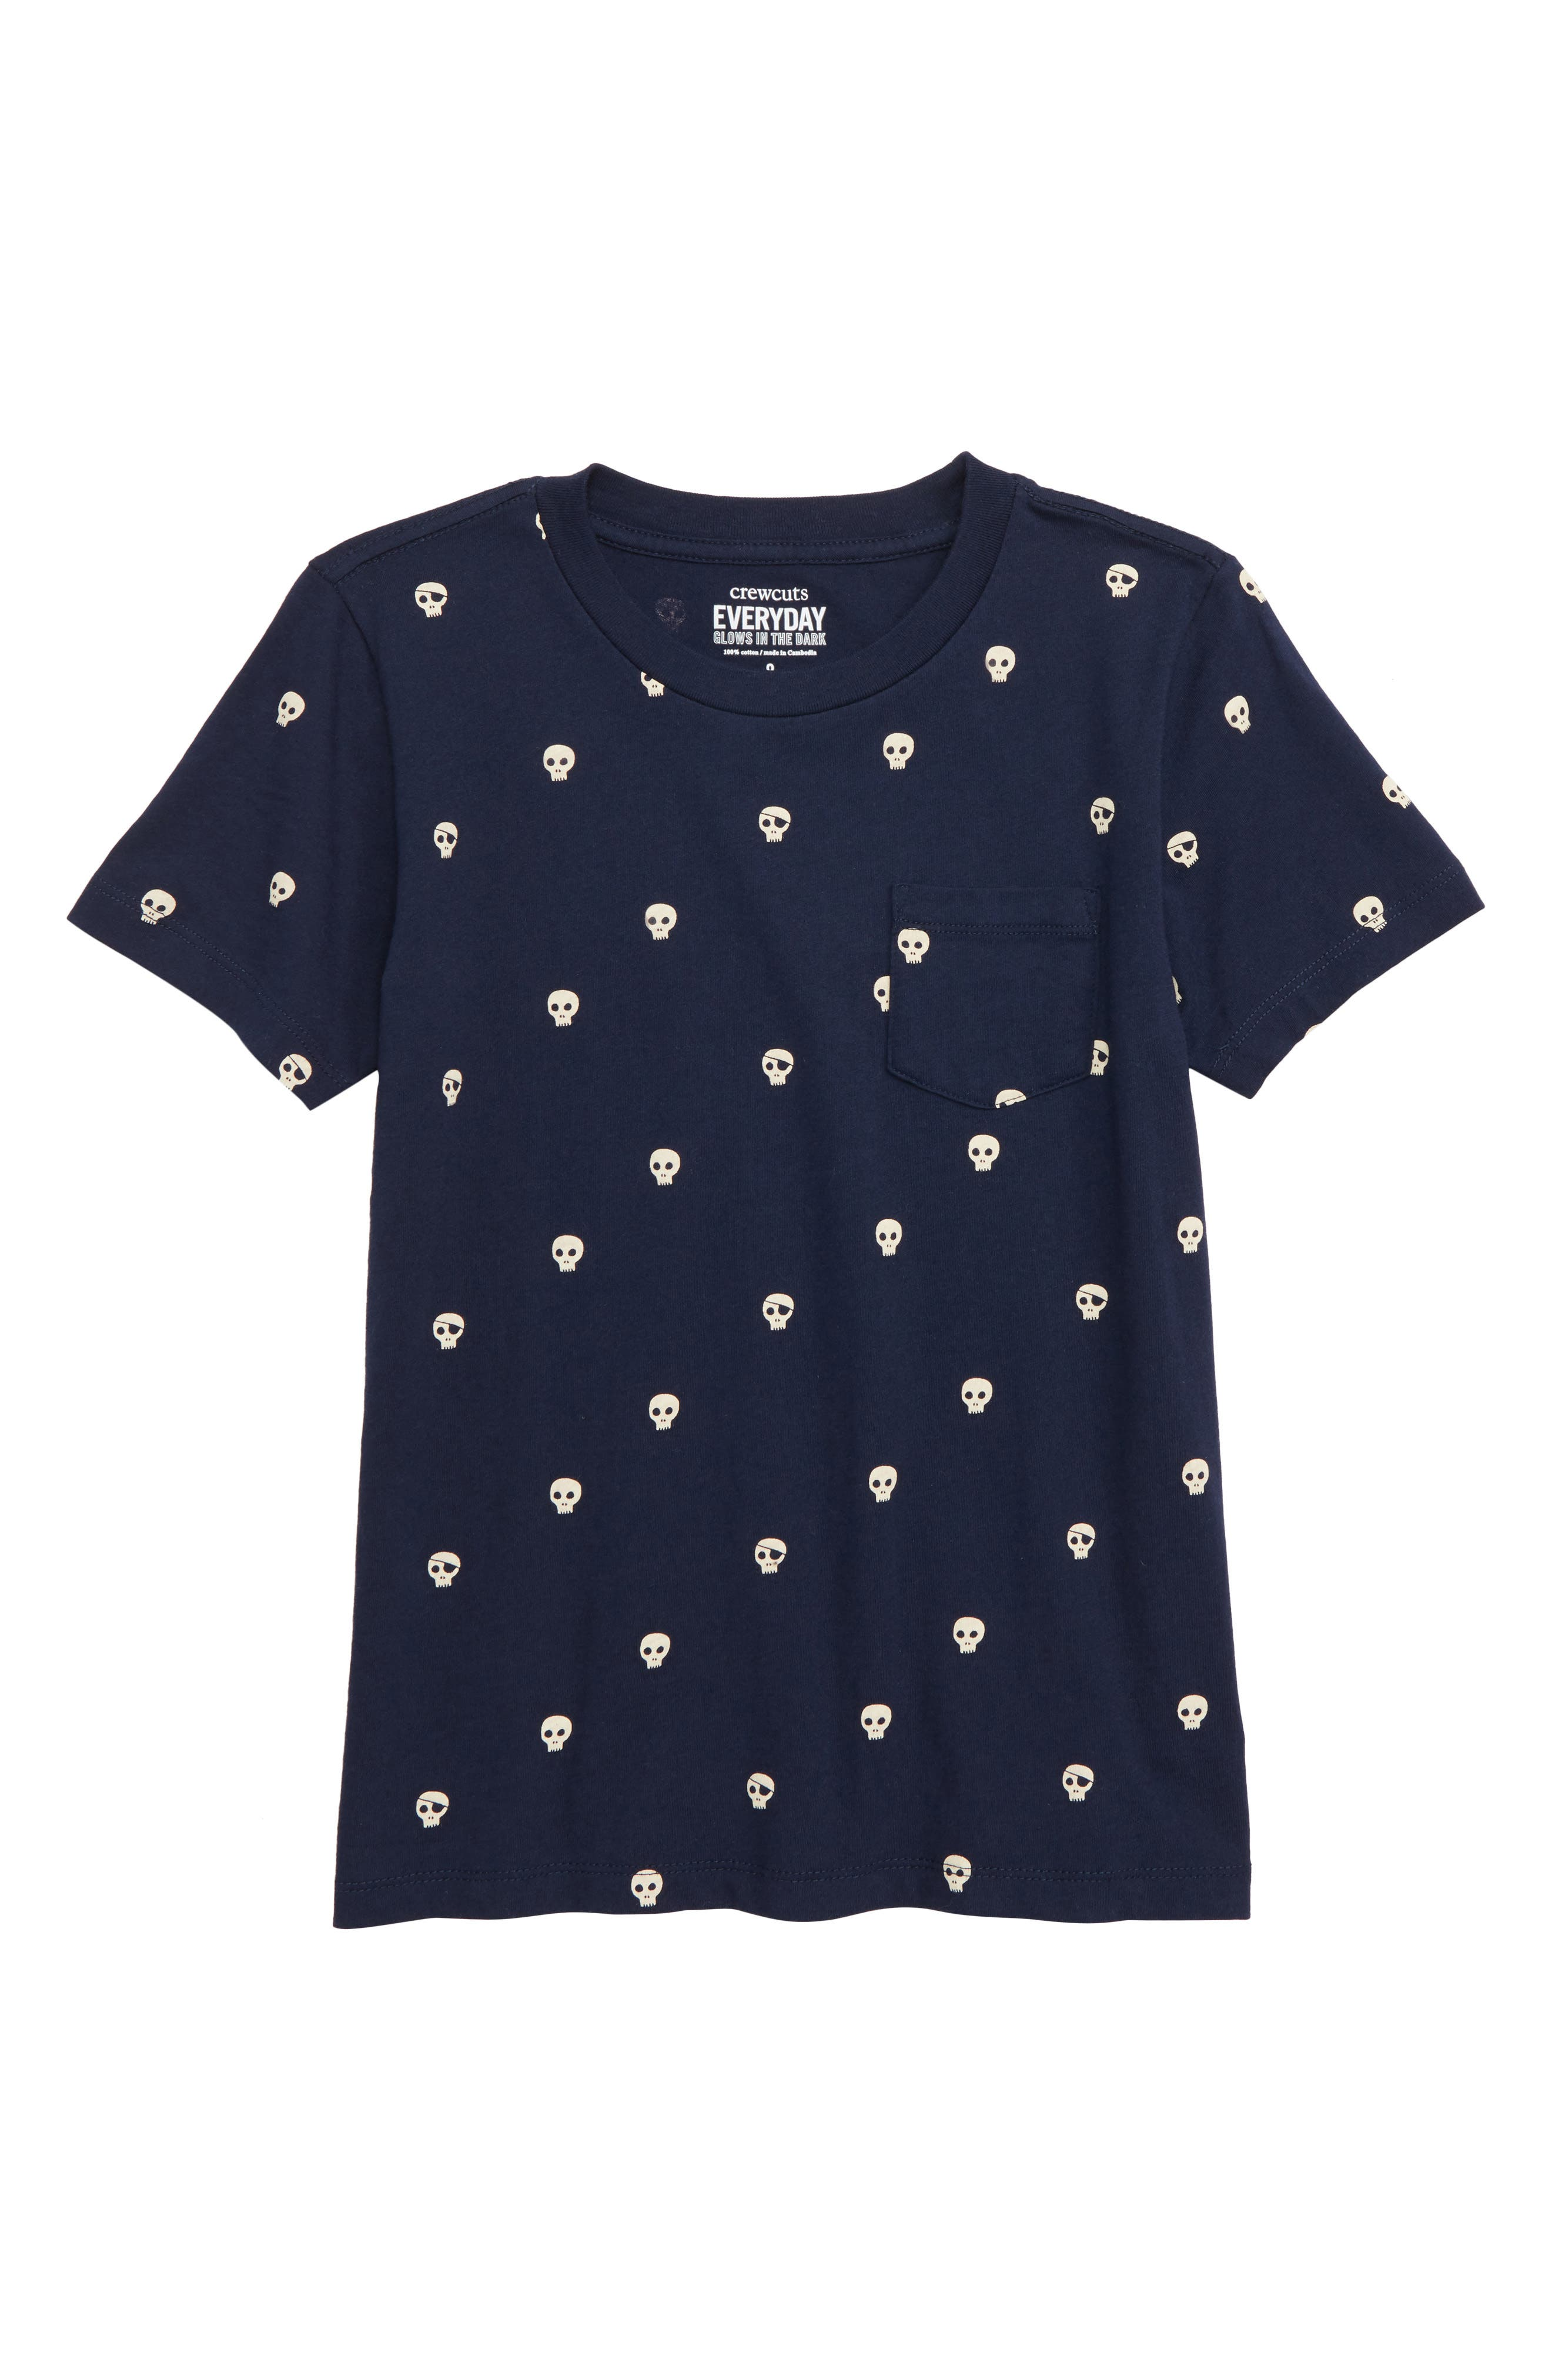 Pocket Glow in the Dark T-Shirt,                         Main,                         color, NAVY